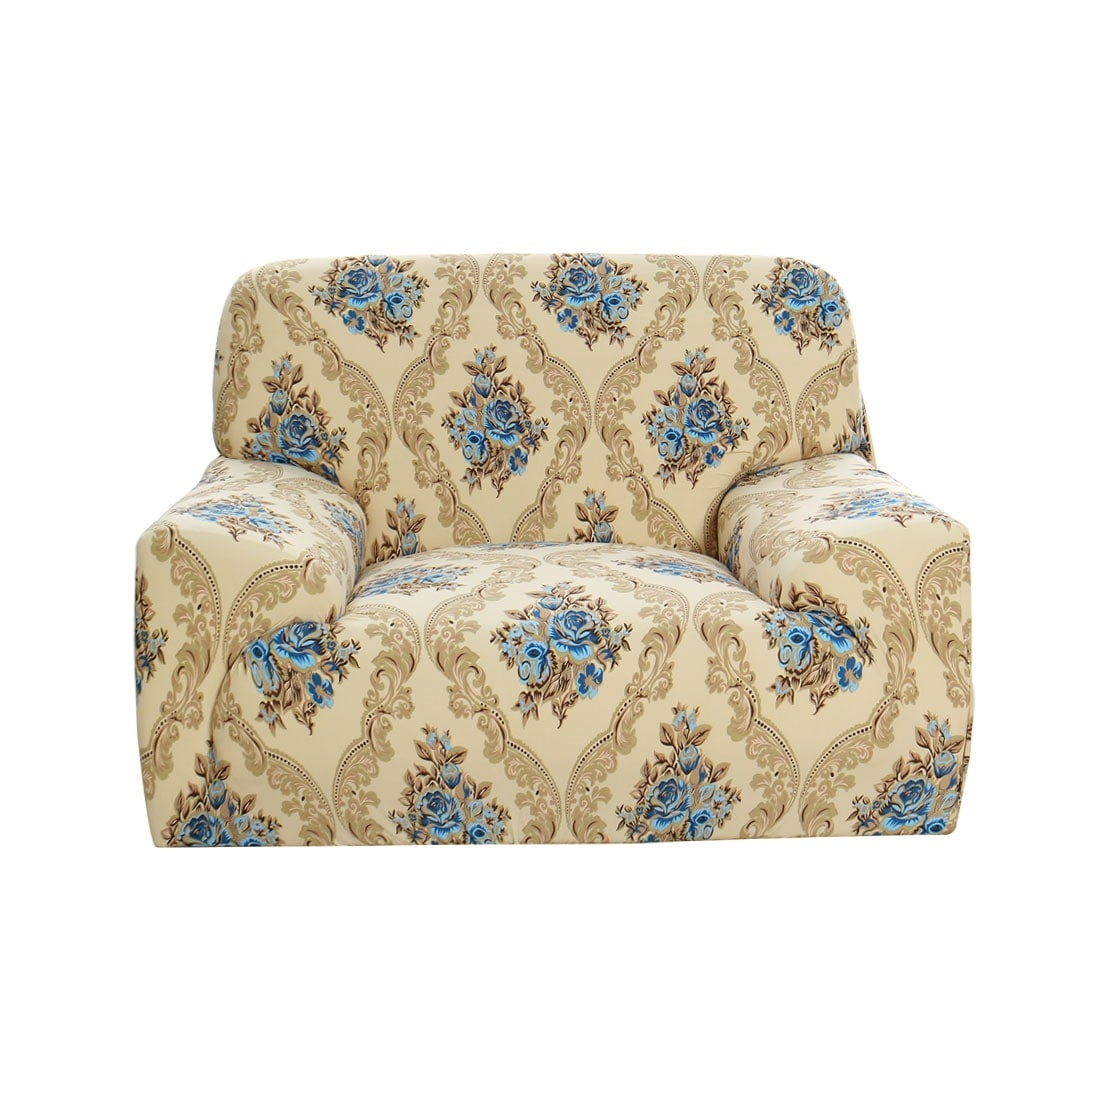 Sofa Couch Covers Slipcovers 1 Seater